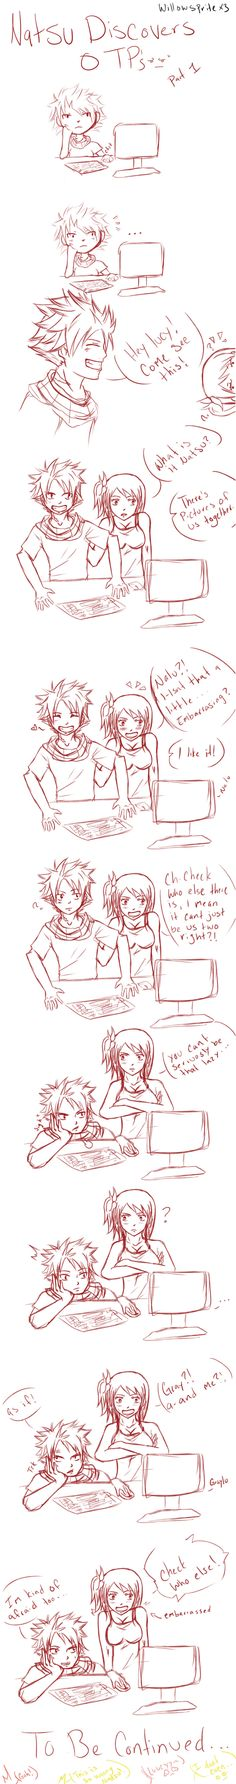 Natsu discovers OTP's - Nalu I by willowspritex3.deviantart.com on @deviantART